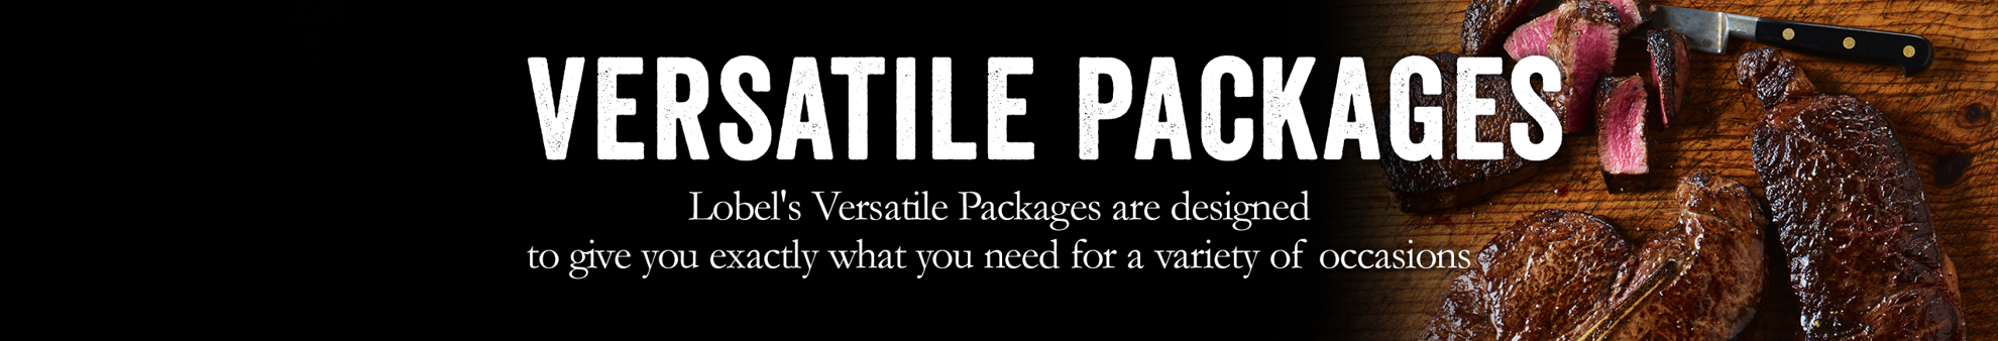 Picture for category Versatile Packages